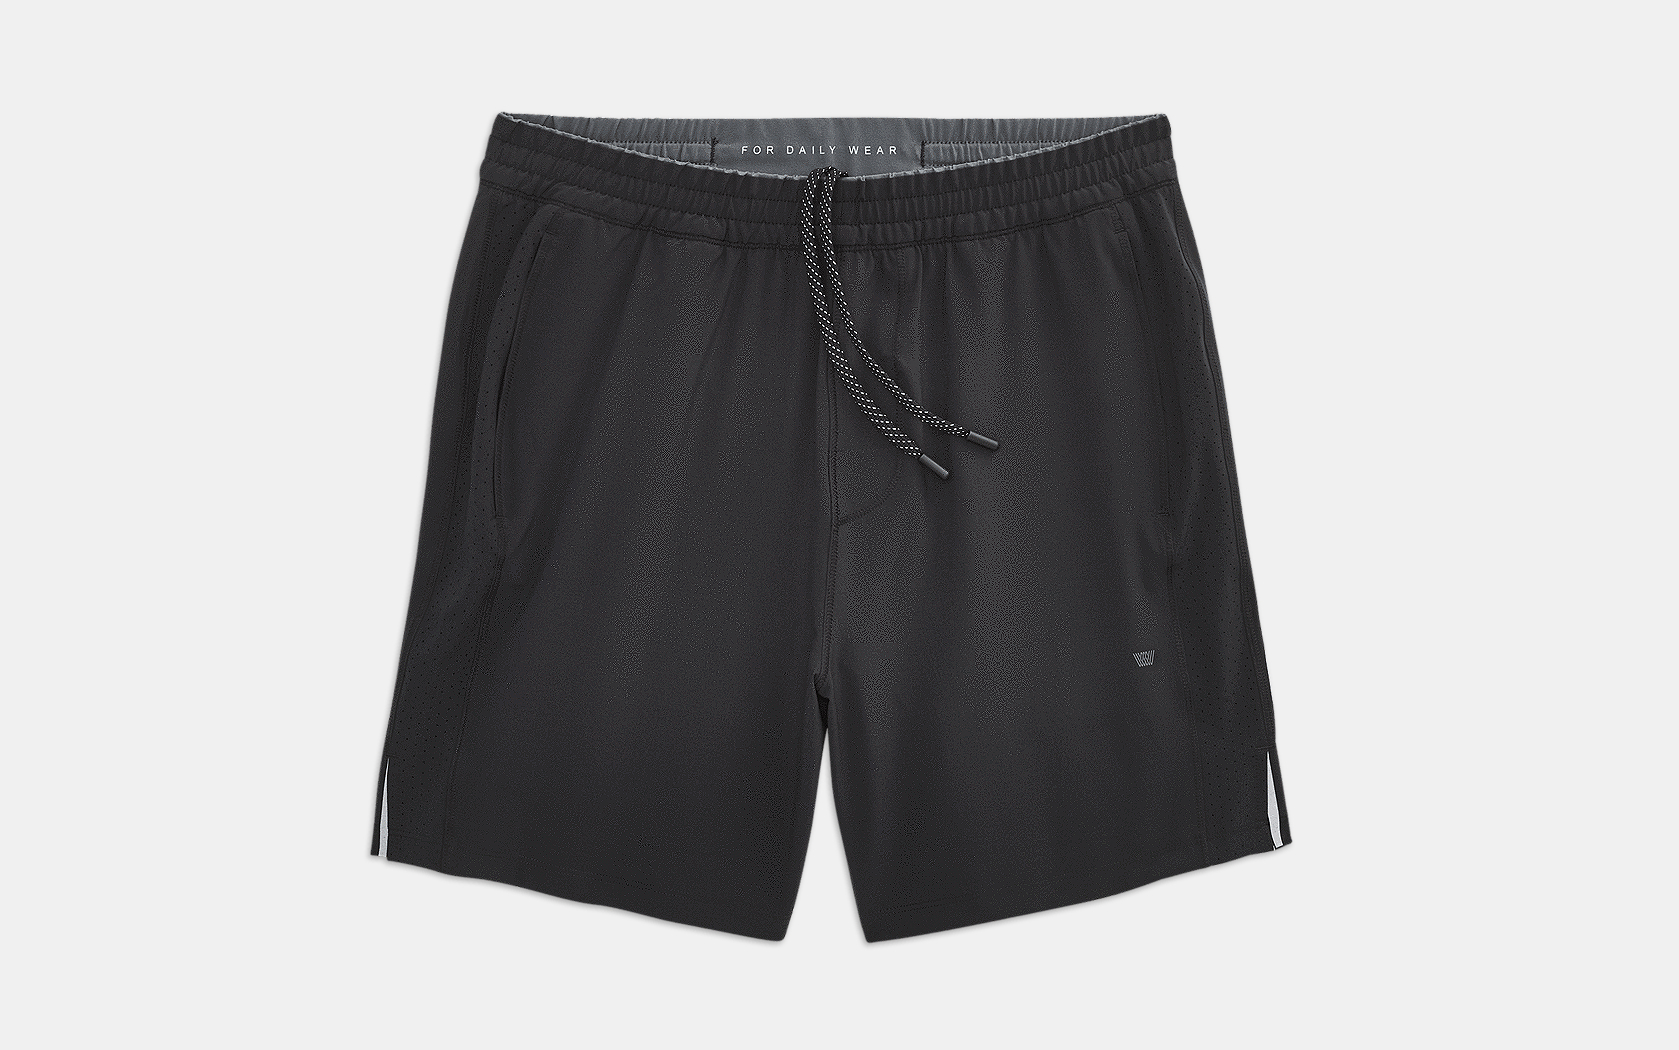 Mack Weldon Stratus Active Short